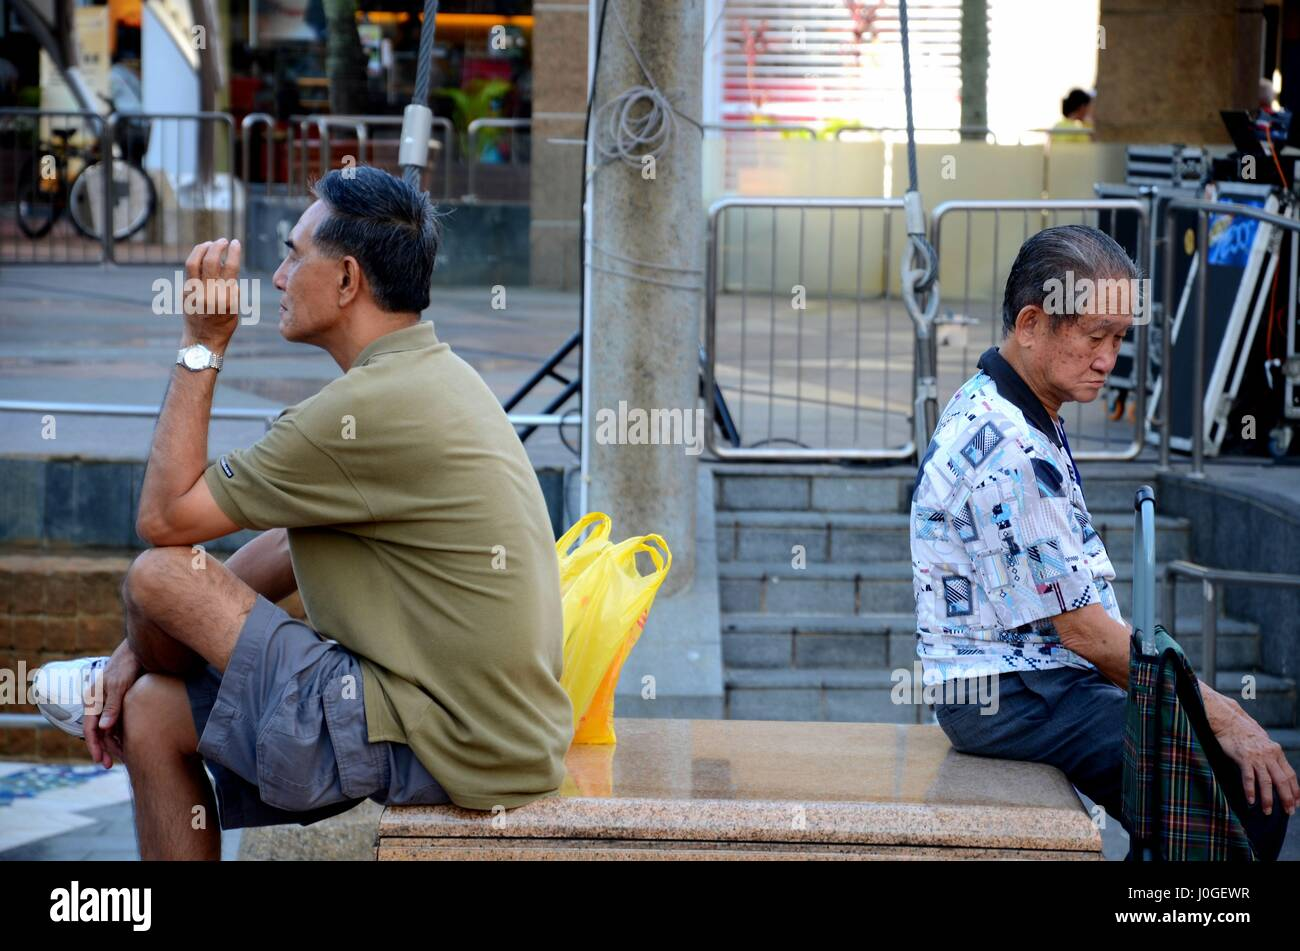 Two men sit back to back while one smokes a cigarette in a public square in Singapore Toa Payoh HDB estate - Stock Image